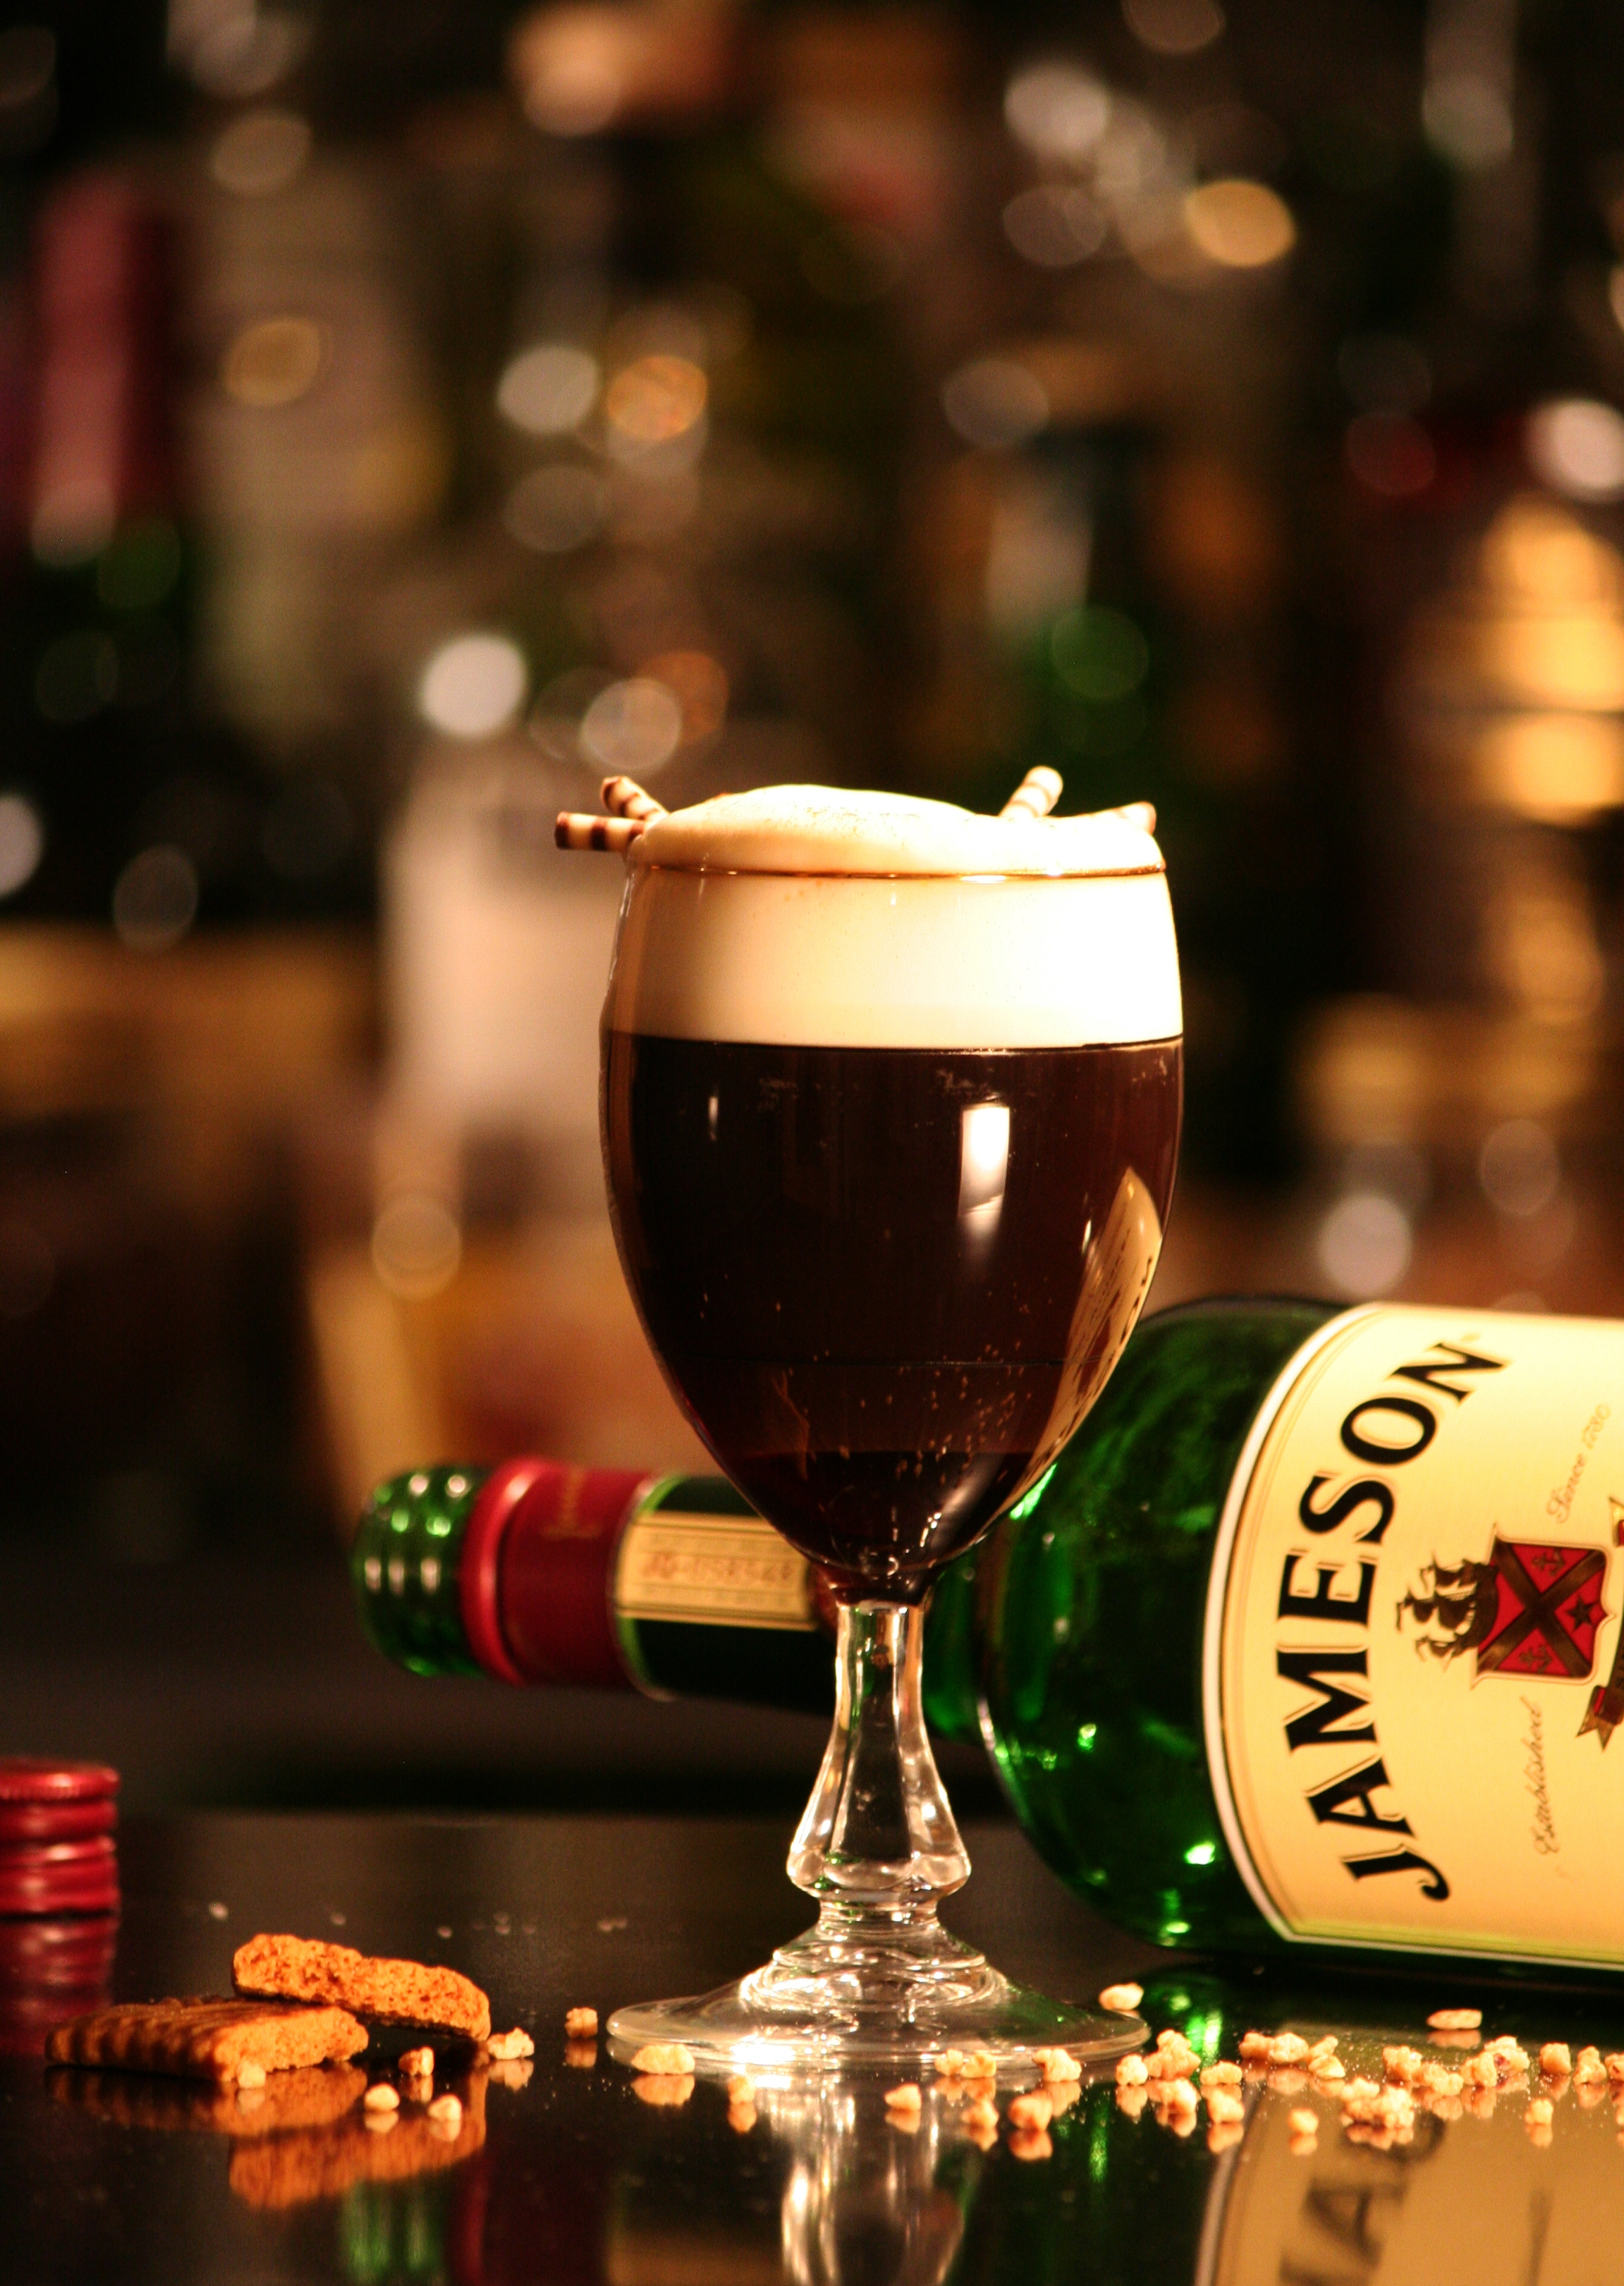 Cup of Irish coffee topped with cream, and a bottle of Jameson whiskey behind it